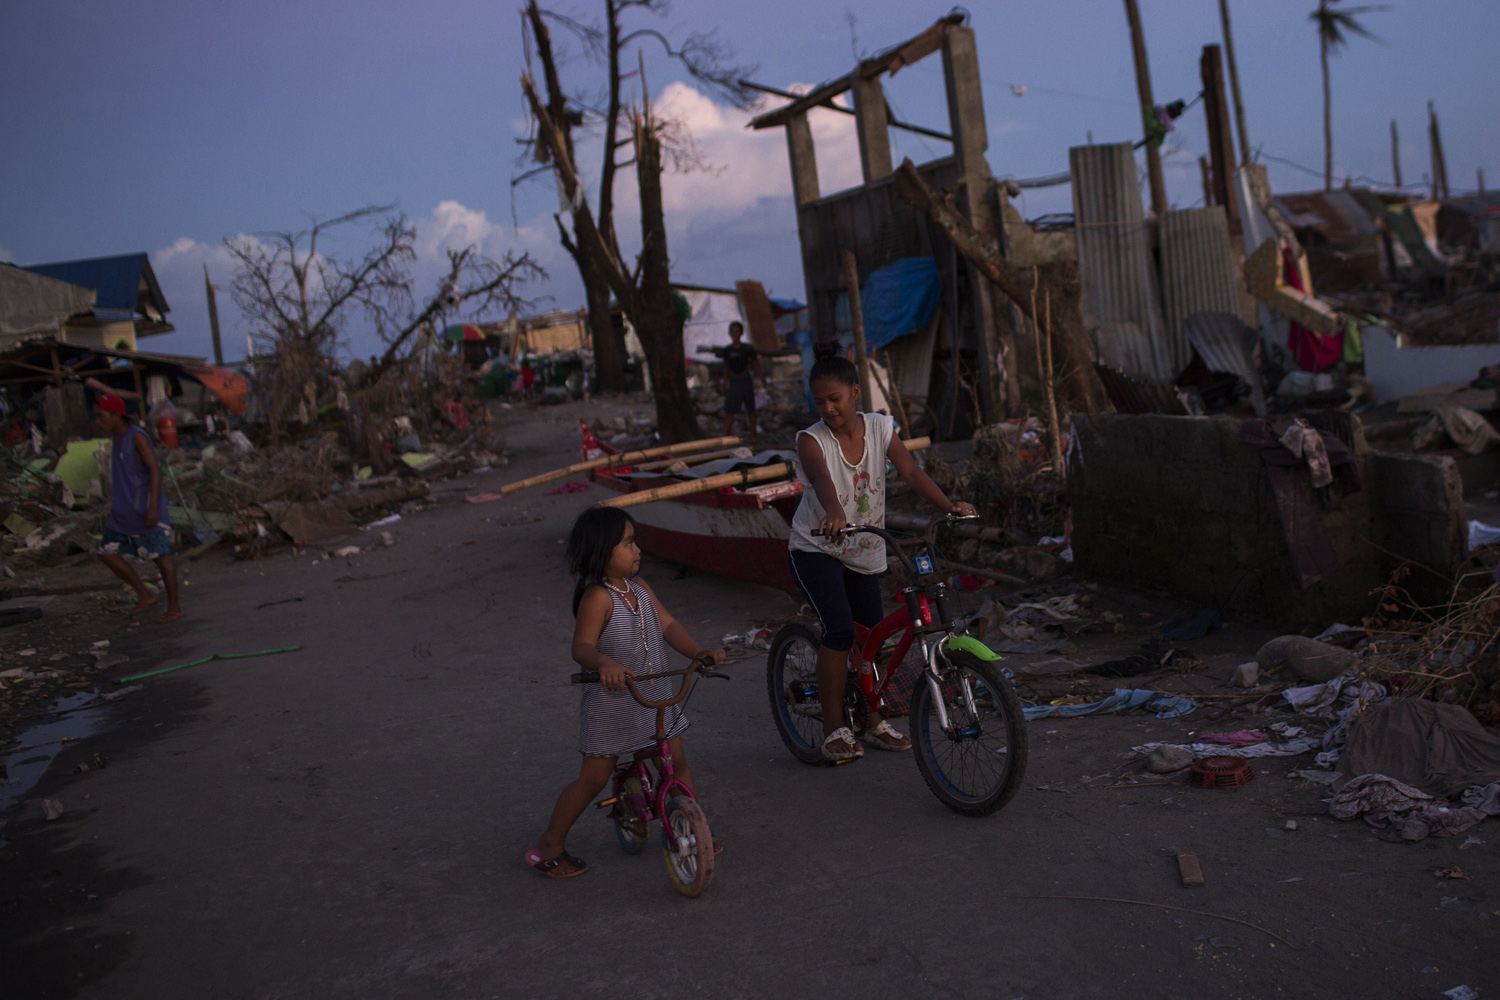 A woman and child bicycle through the rubble of homes destroyed by Haiyan in Tanuan, Nov. 15, 2013.